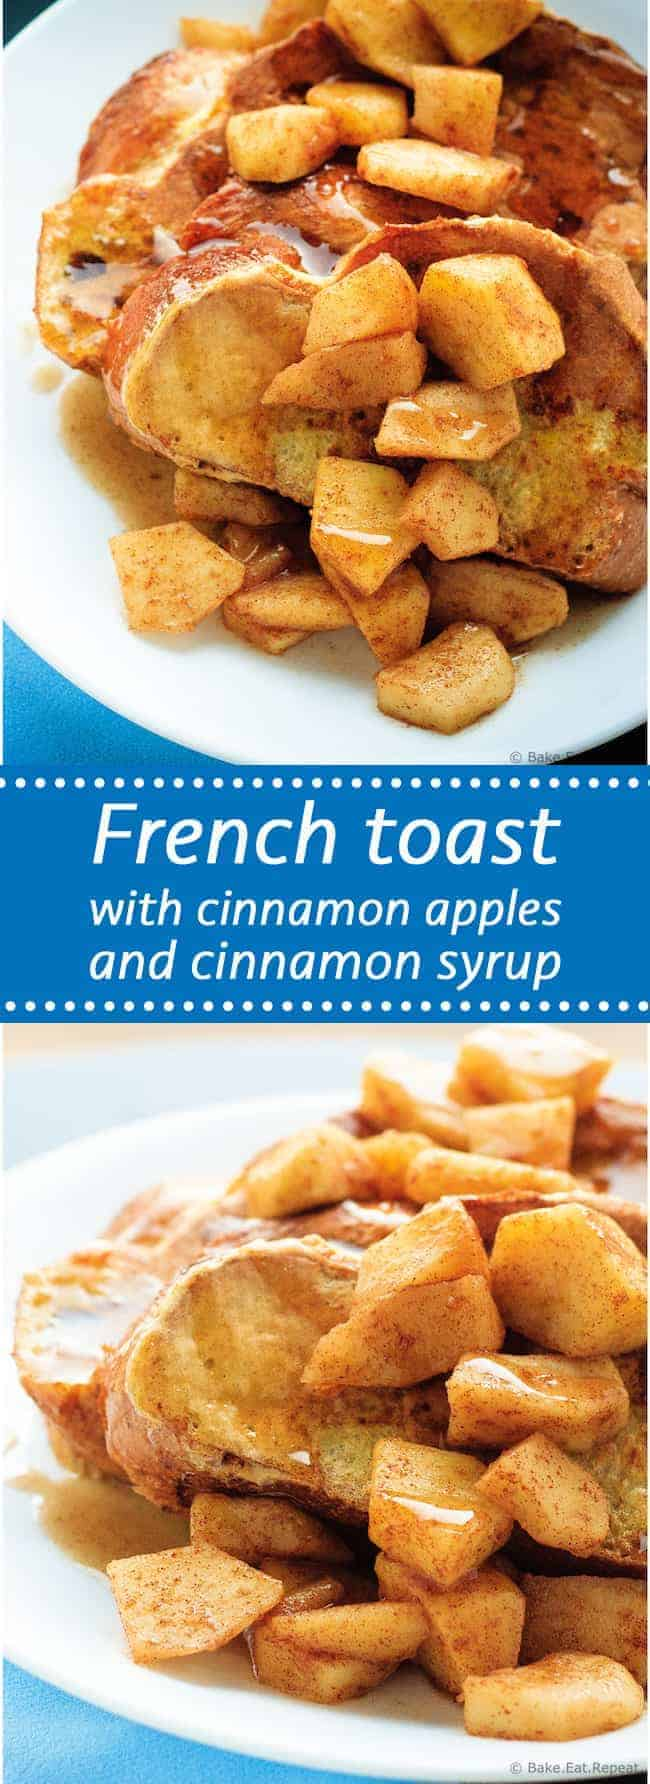 This French toast with cinnamon apples and cinnamon syrup is so easy to make and is the perfect weekend brunch!